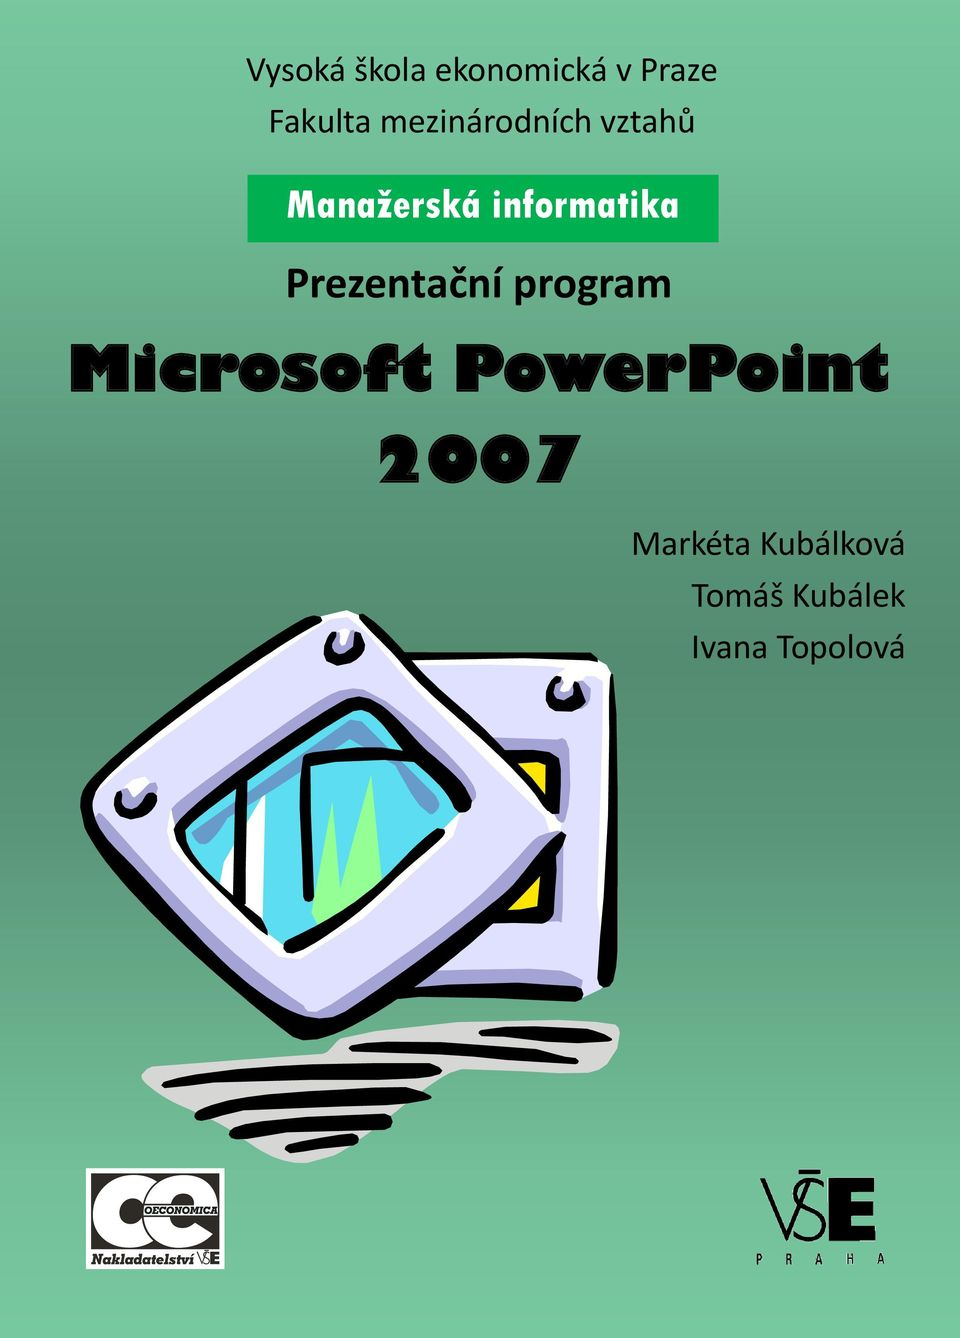 Prezentační program Microsoft PowerPoint